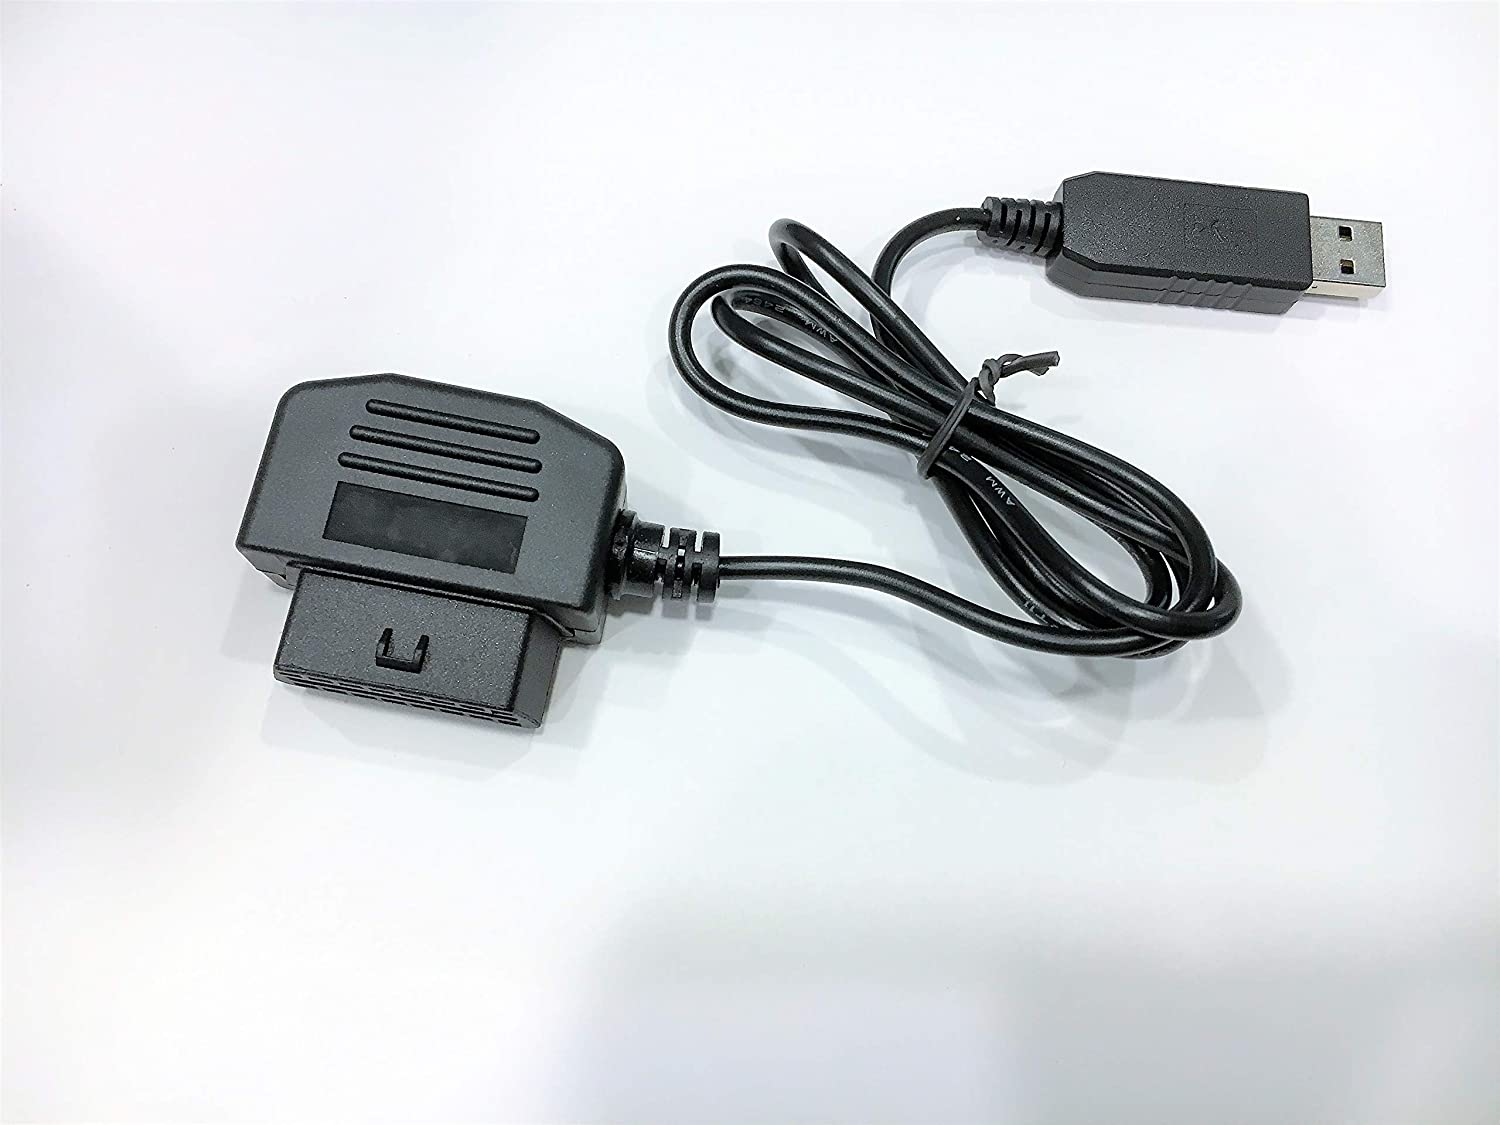 Usb Adapter For Att Zte Mobley Obd2 Lte Wi Fi Hotspot Home Wiring Internet Cell Phones Accessories